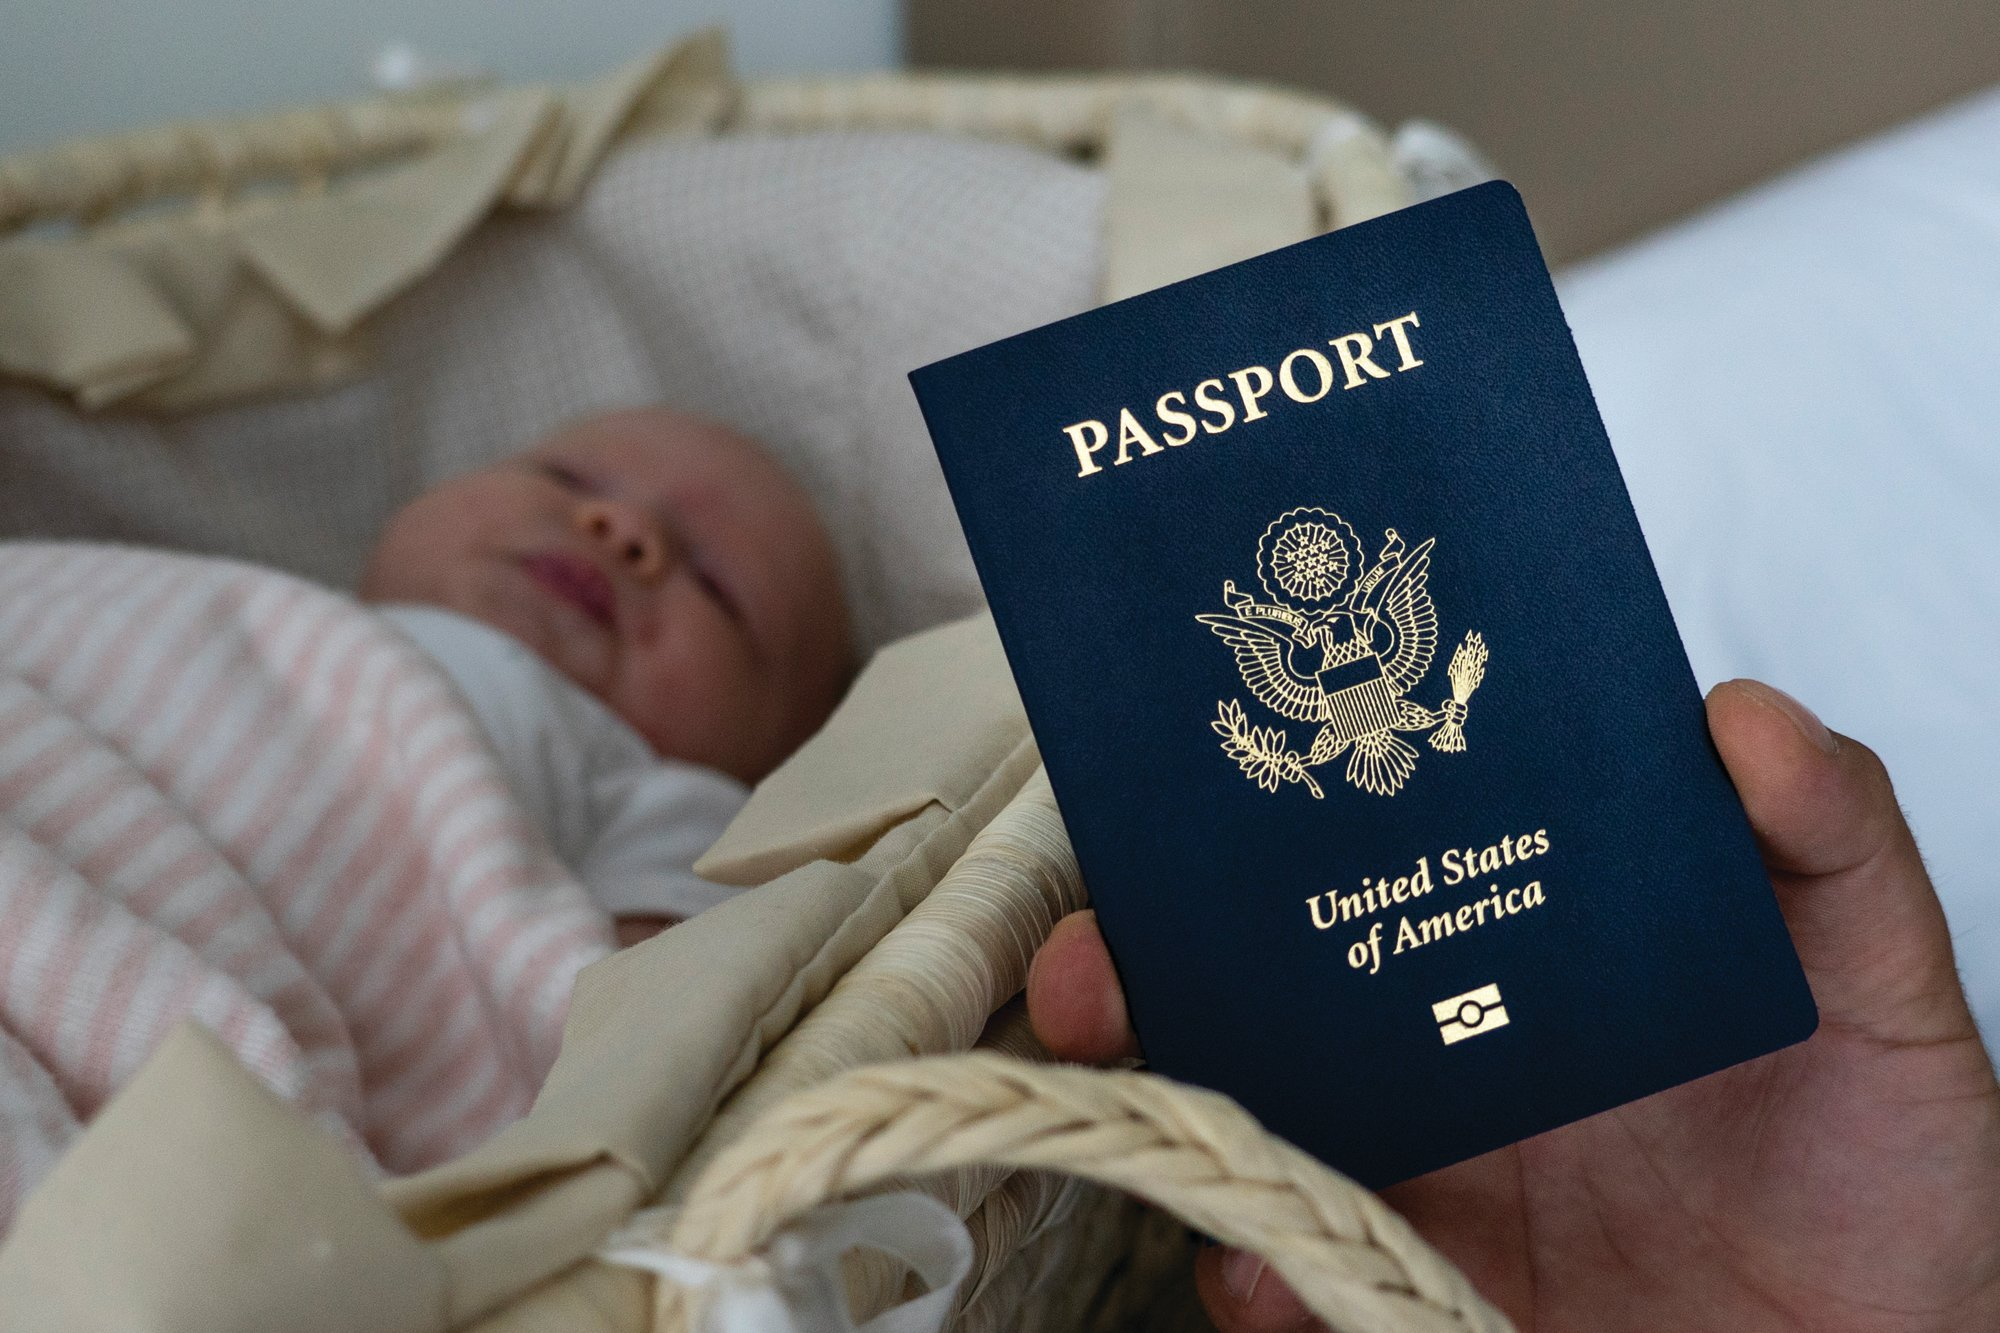 In this photo taken on Jan. 24, 2019, Denis Wolok, the father of then 1-month-old Eva, shows the child's U.S. passport during an interview with The Associated Press in Hollywood, Florida. Russian women, like Wolok's wife, Olga Zemlyanaya, travel to the United States to give birth so that their child can acquire all the privileges of American citizenship.